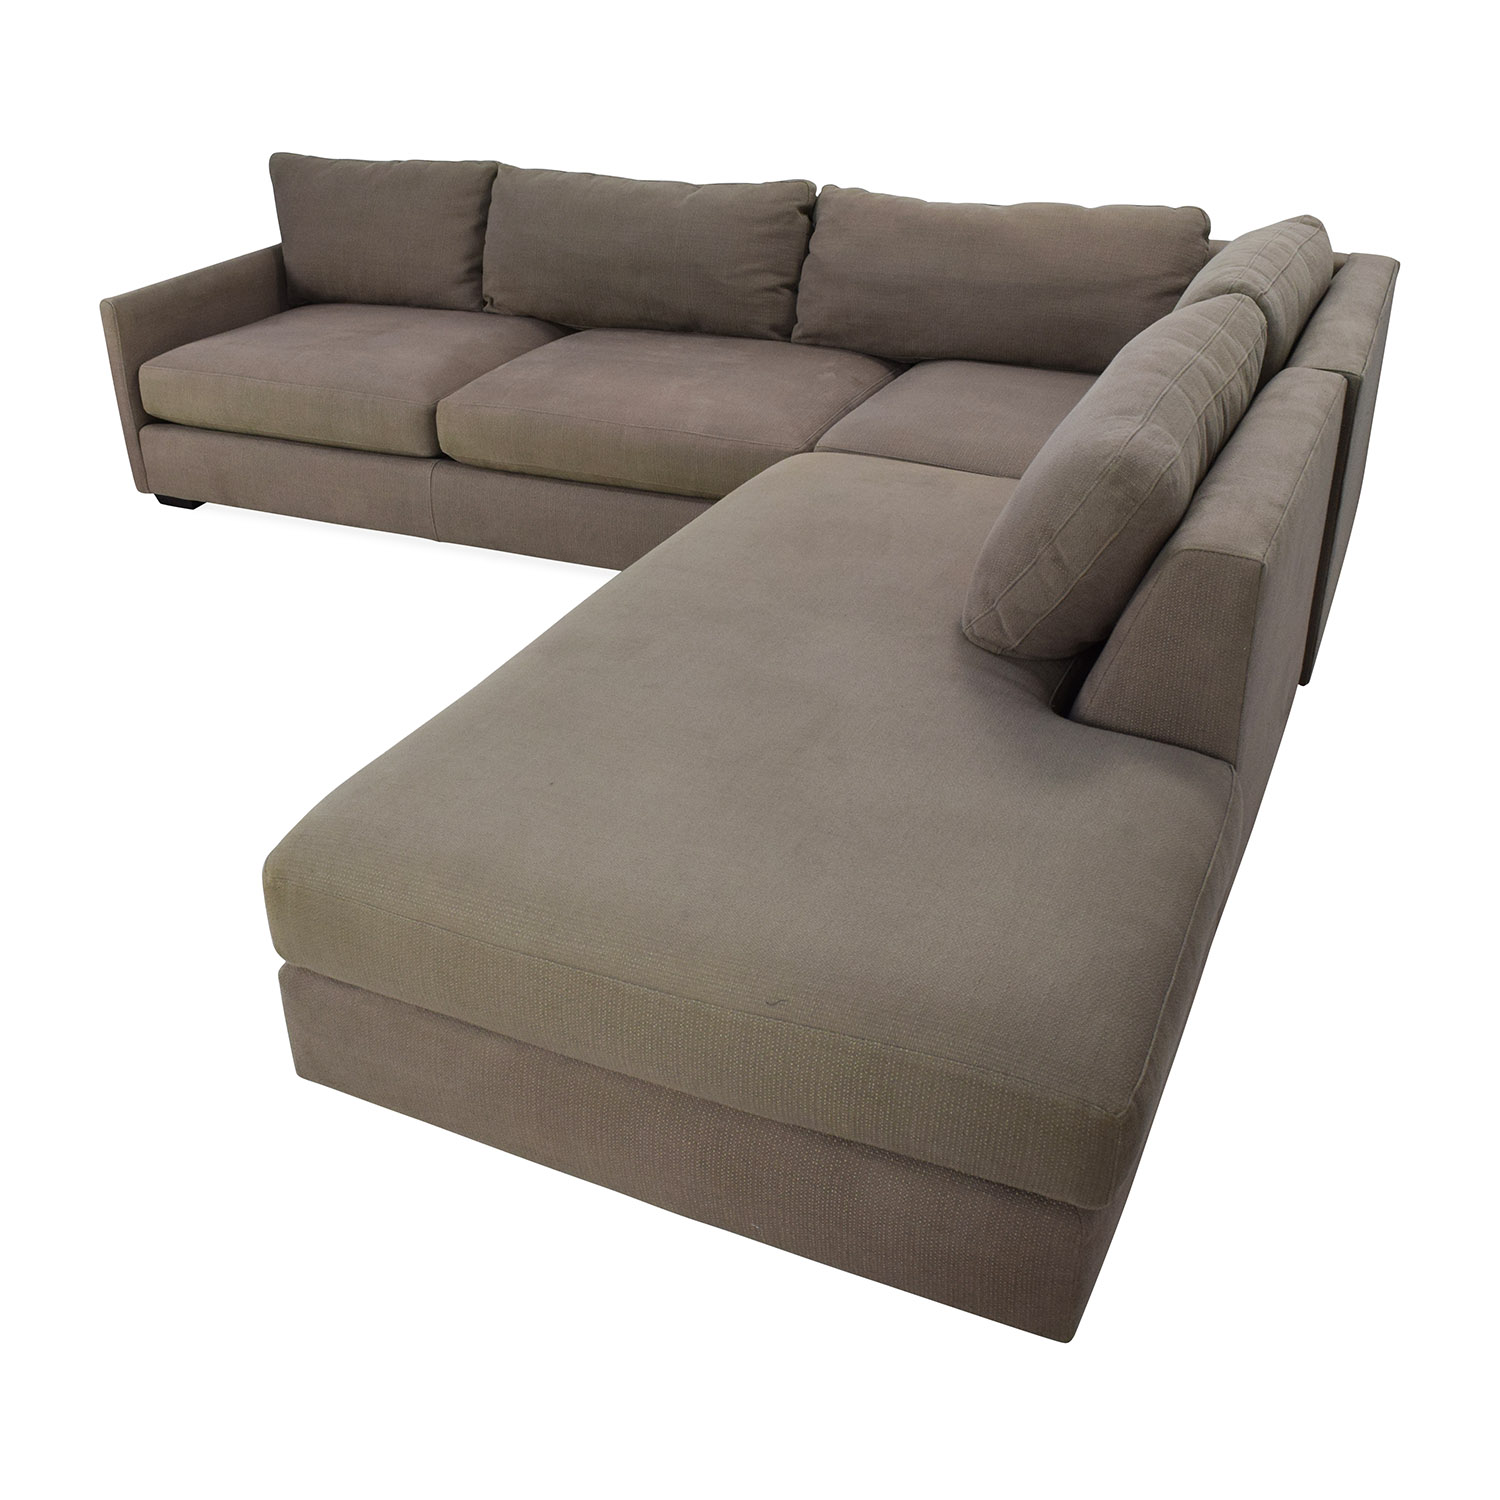 82 off crate barrel crate barrel domino sectional sofa sofas